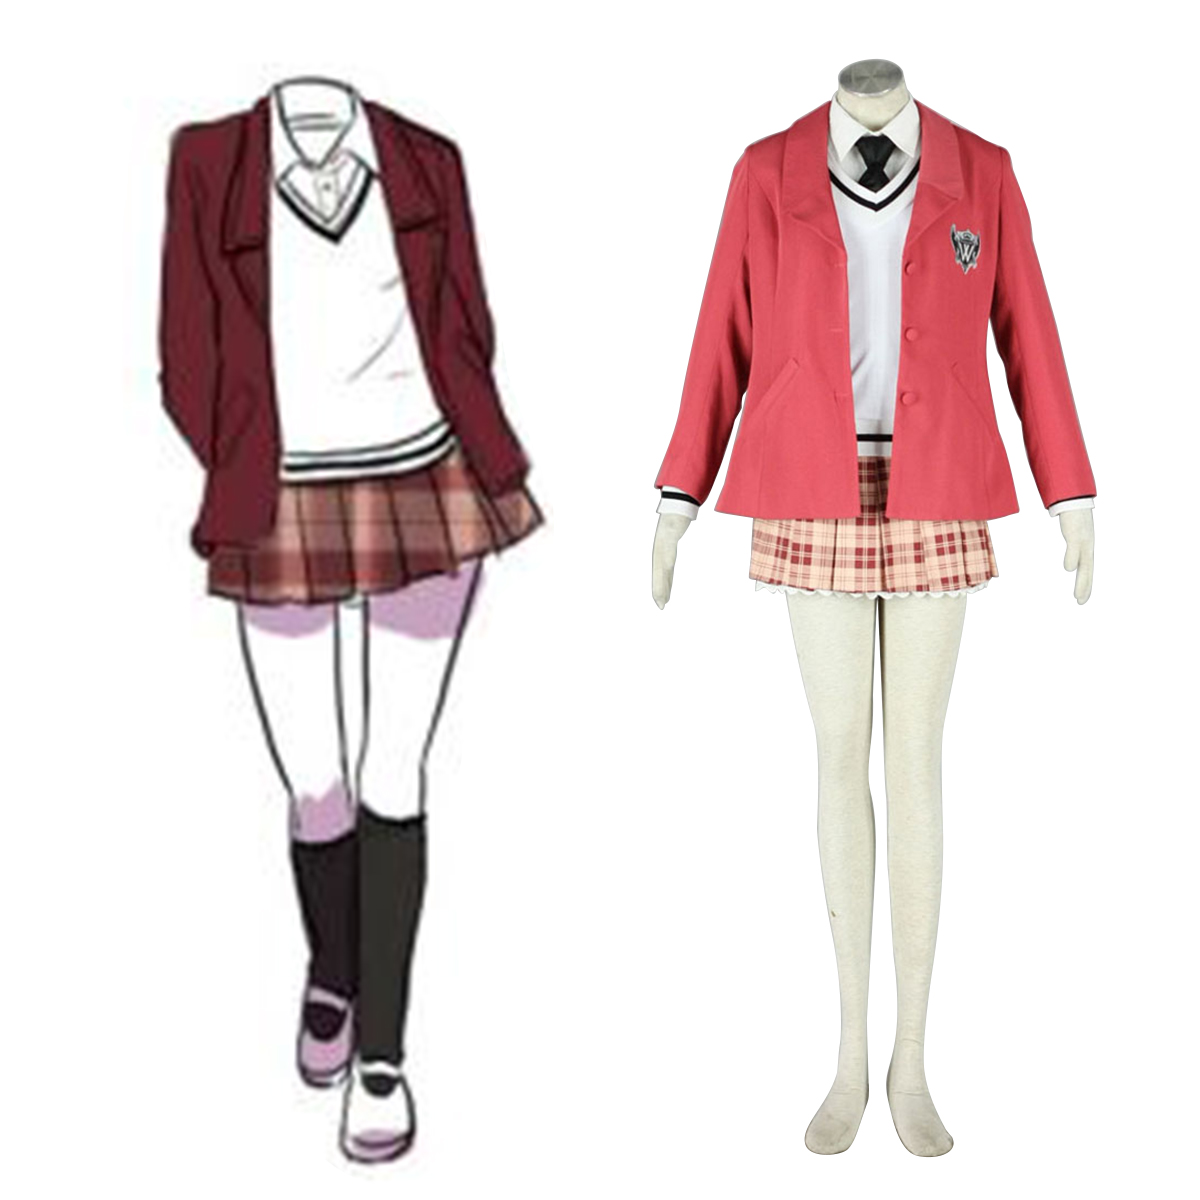 Axis Powers Hetalia Winter Female School Uniform 1 Anime Cosplay Costumes Outfit